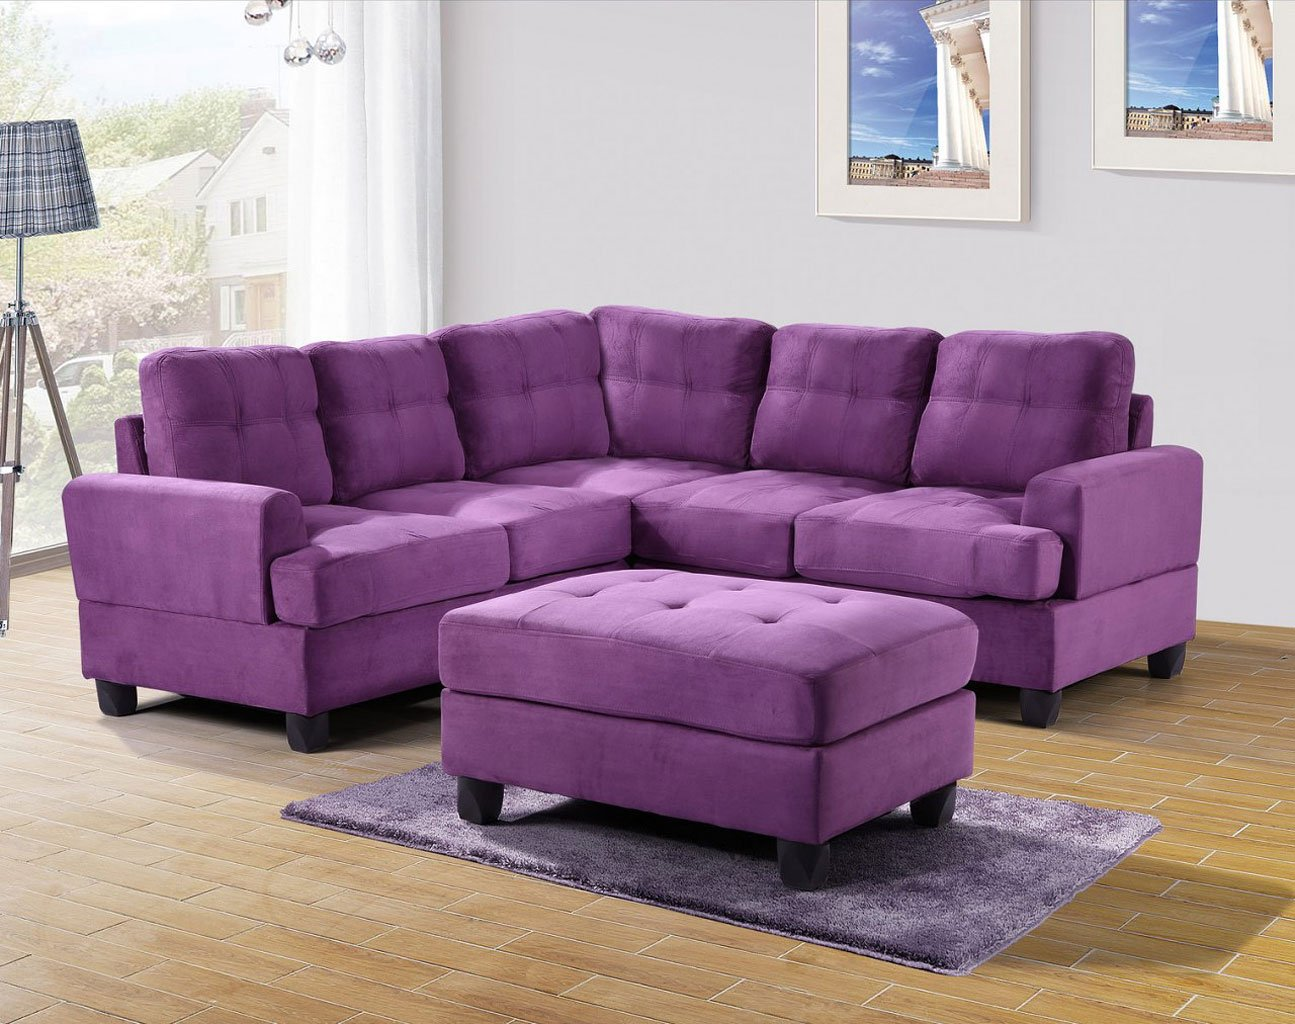 G517 corner sectional set purple living room sets for Purple couch set